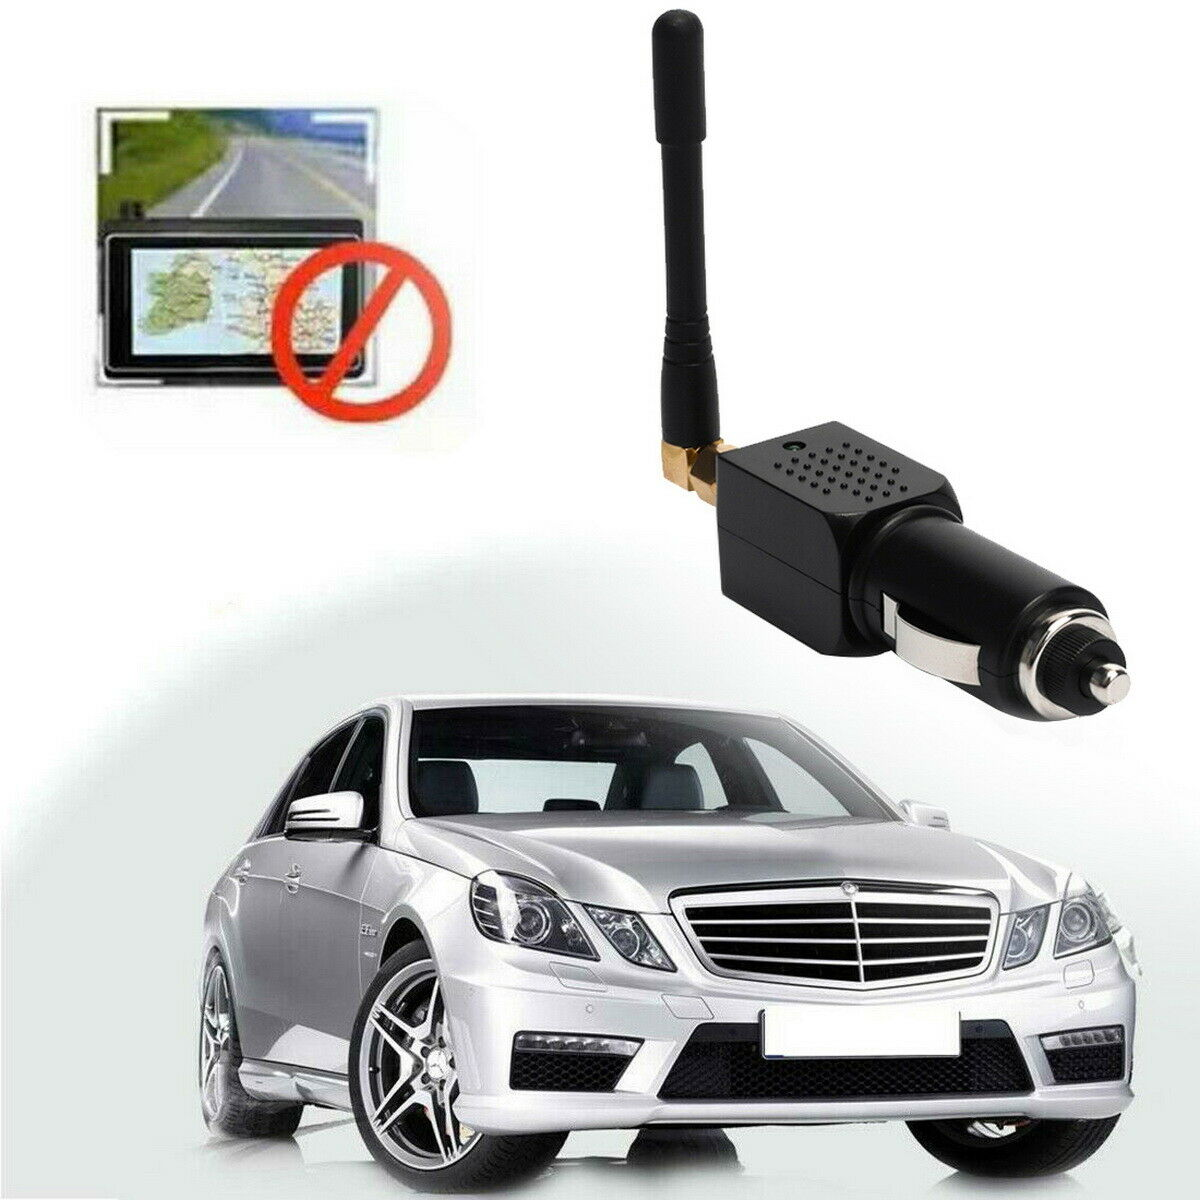 GPS SIGNAL INTERFERENCE BLOCKER ANTI TRACKER NO TRACKING STALKING CASE